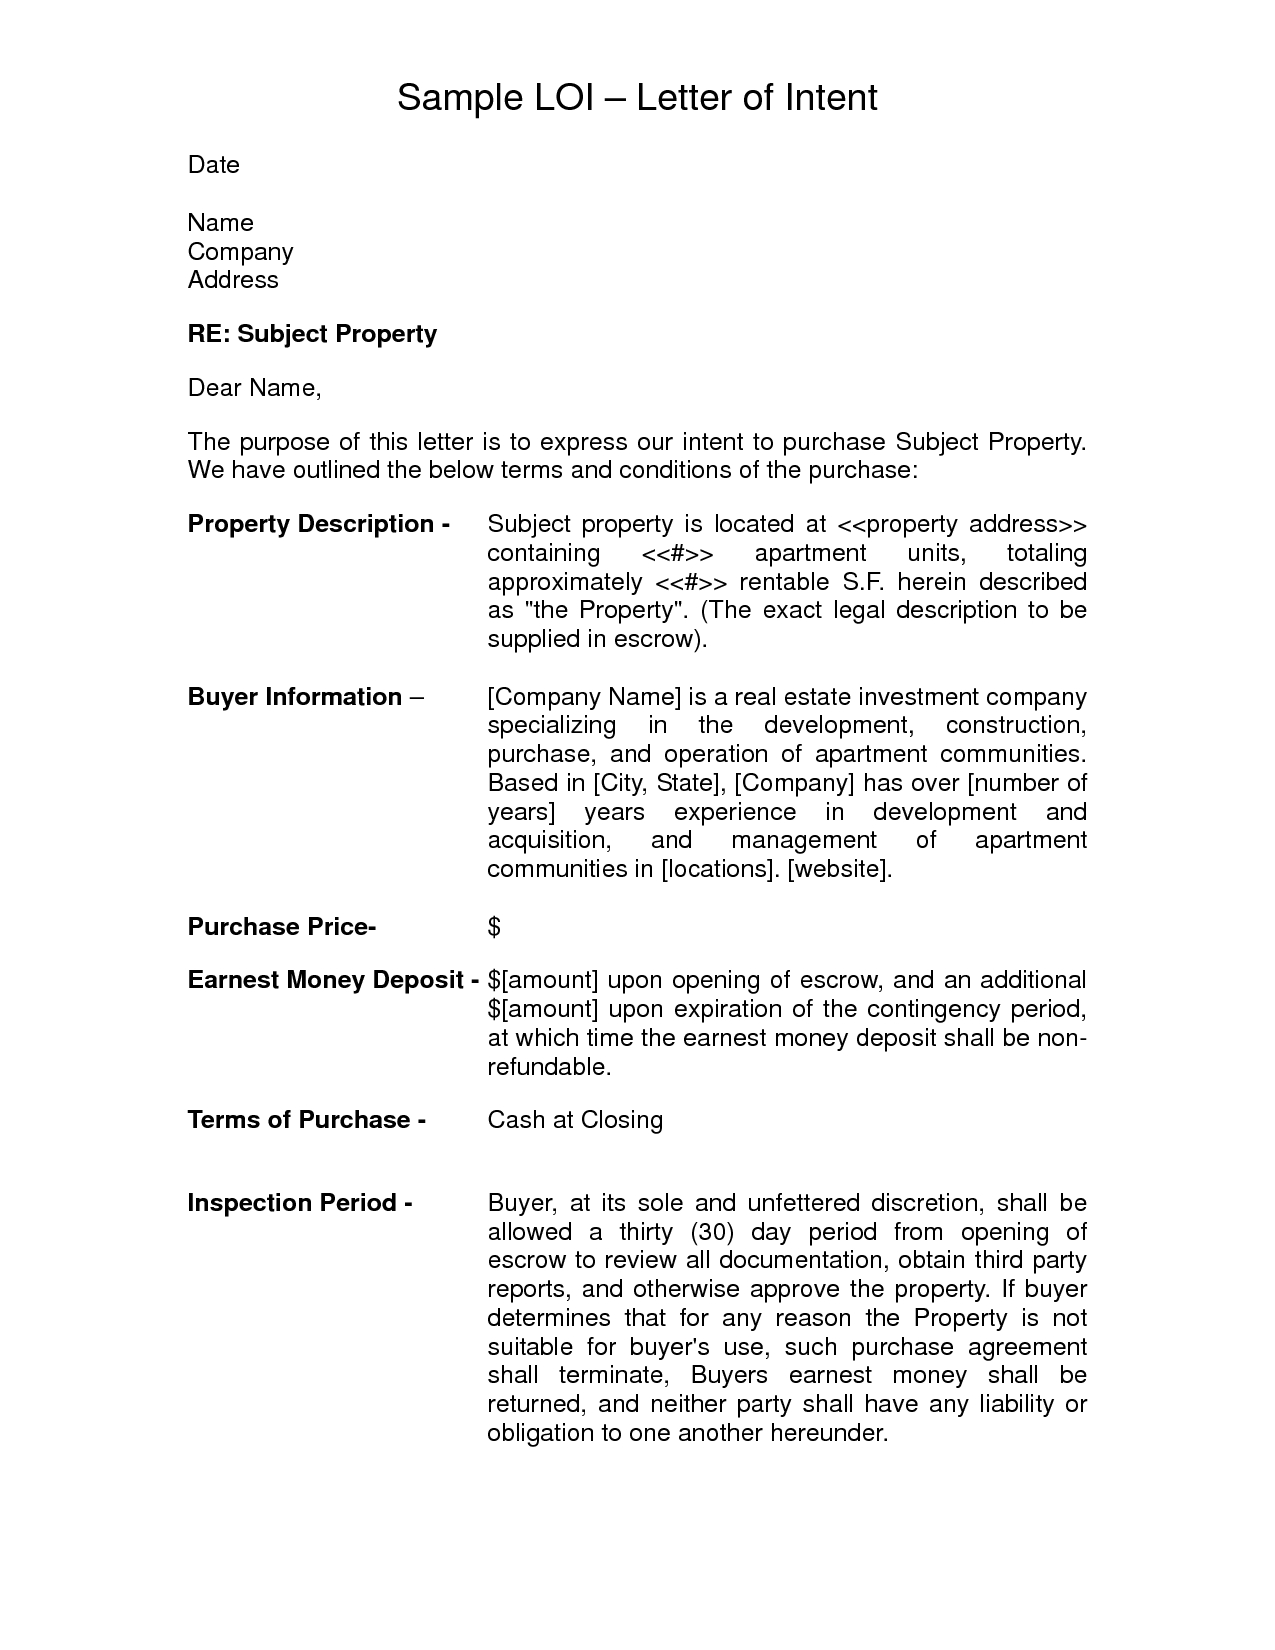 Letter Of Intent to Sell Property Template - Letter Intent to Sell Sample Property Template Examples Best